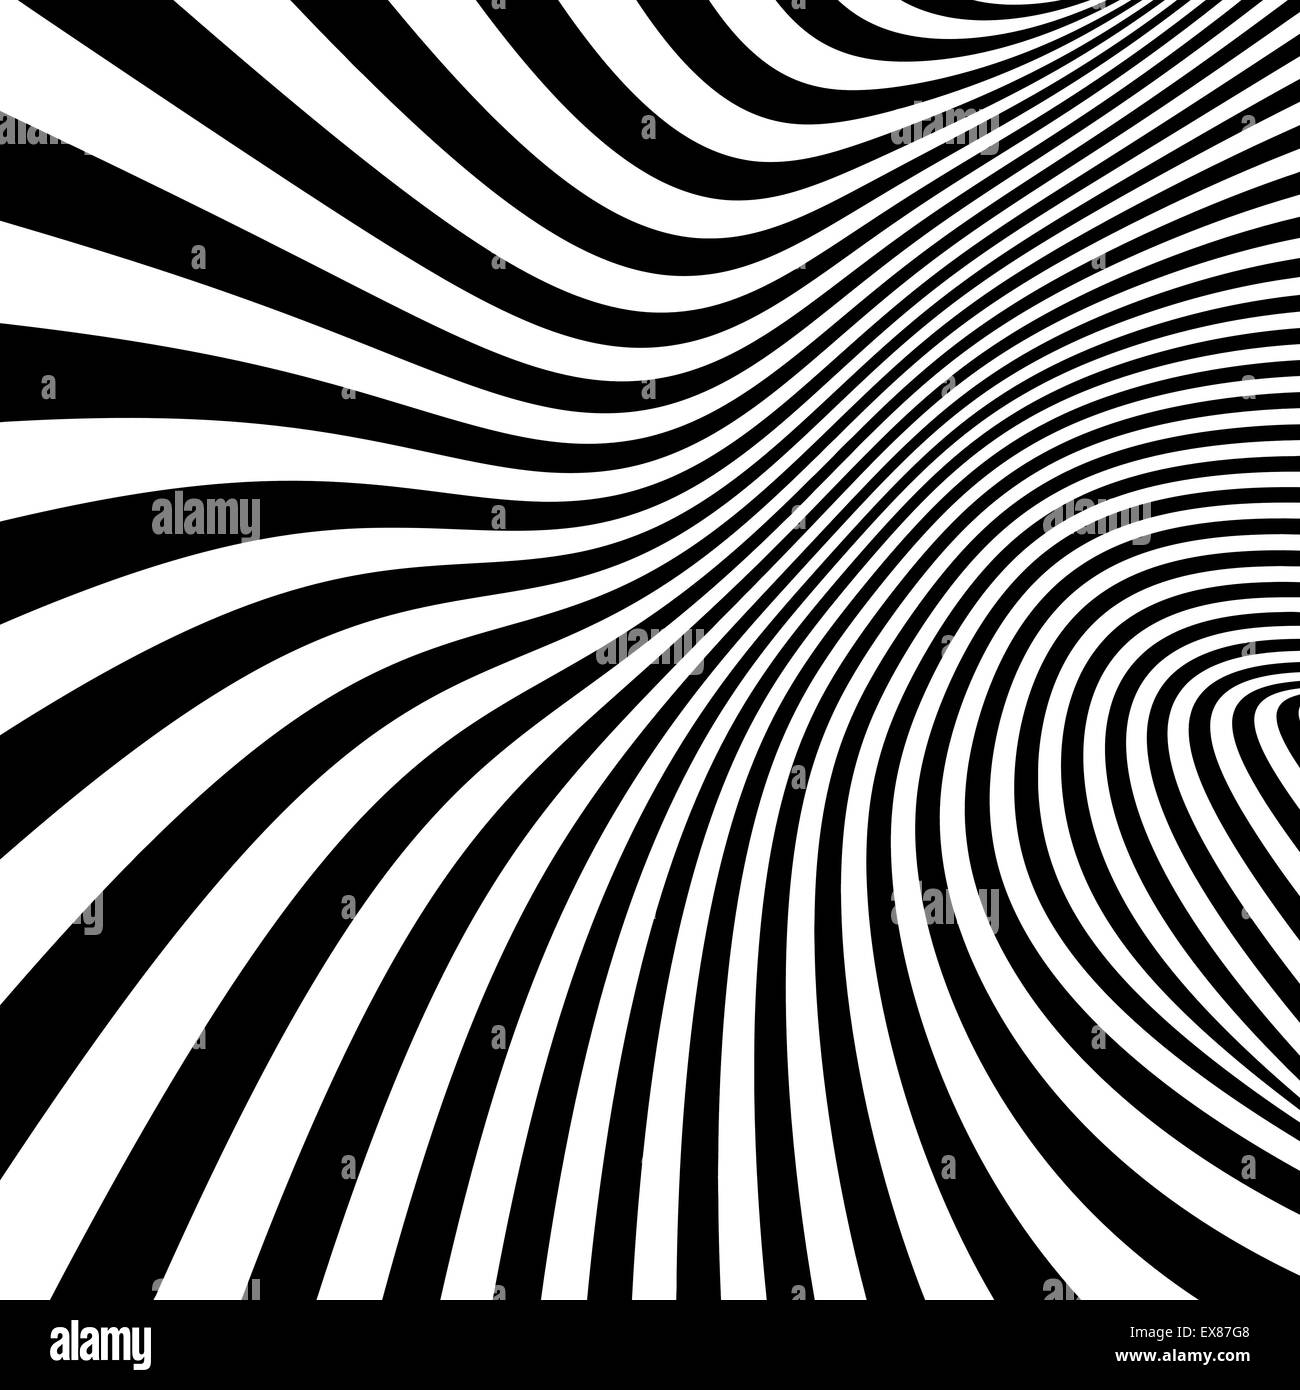 3d Unity Live Wallpaper Abstract Swirl Background Pattern With Optical Illusion